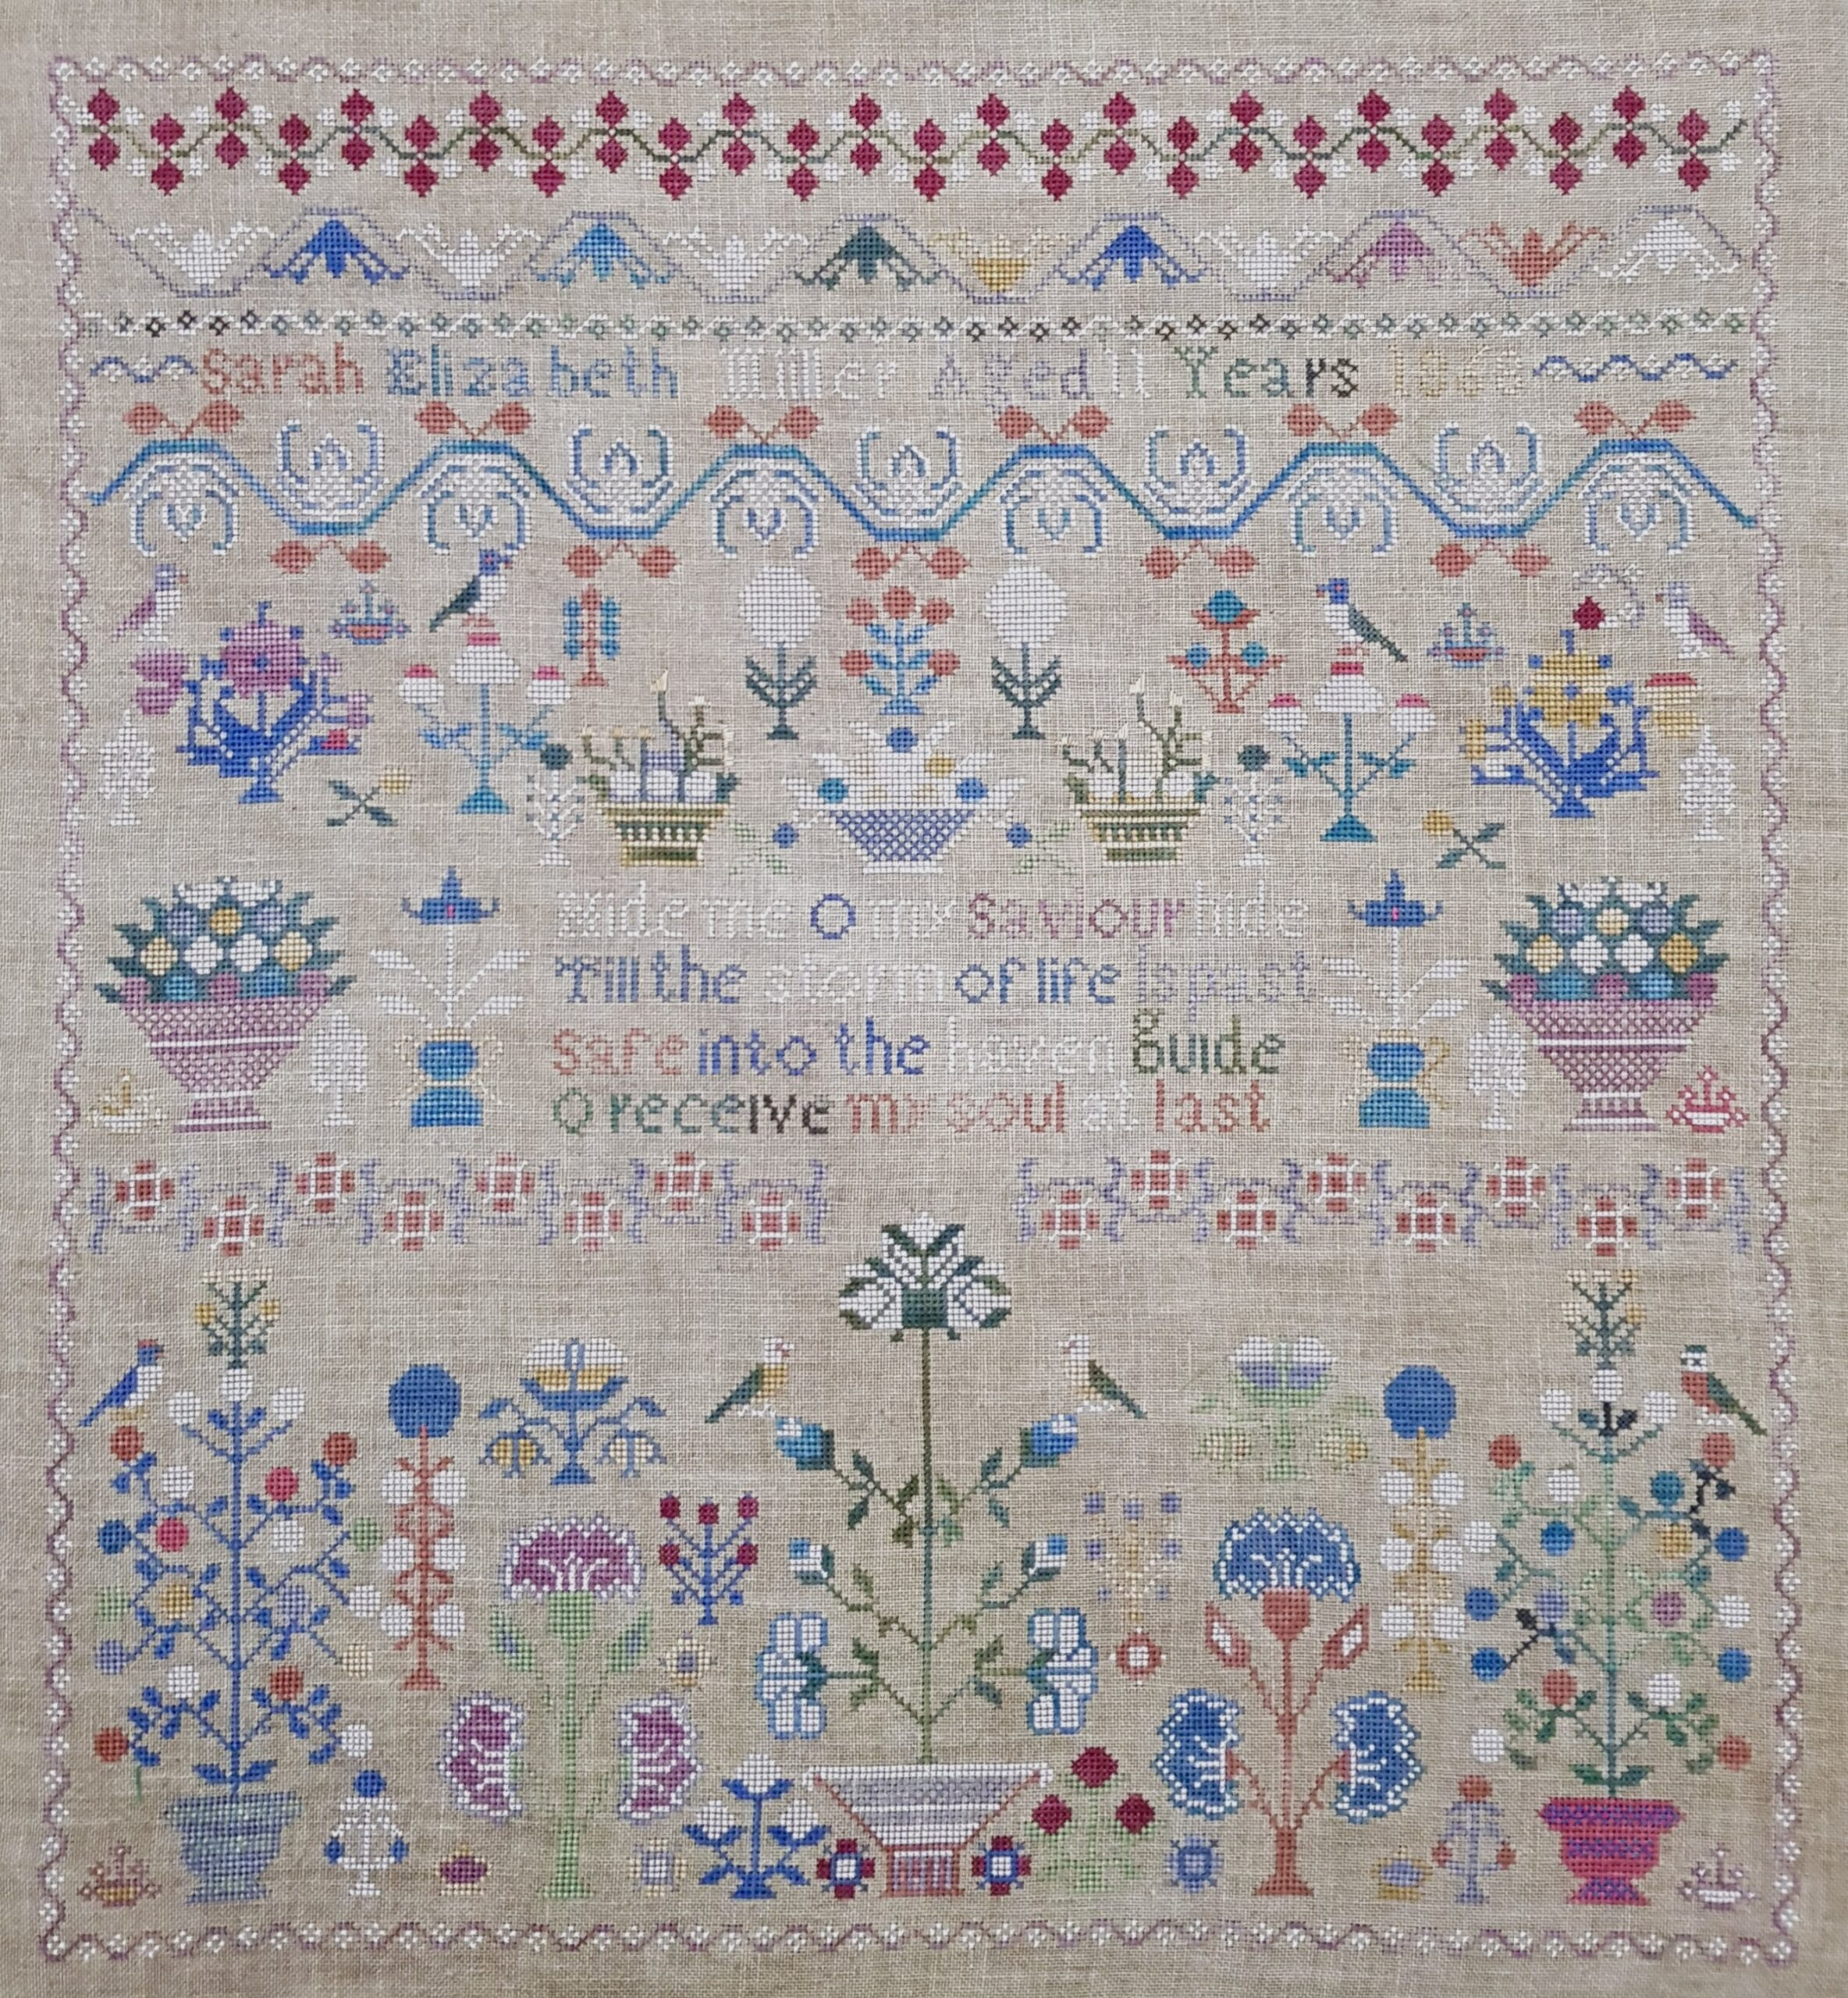 sampler in blues and white and red sarah elizabeth miller